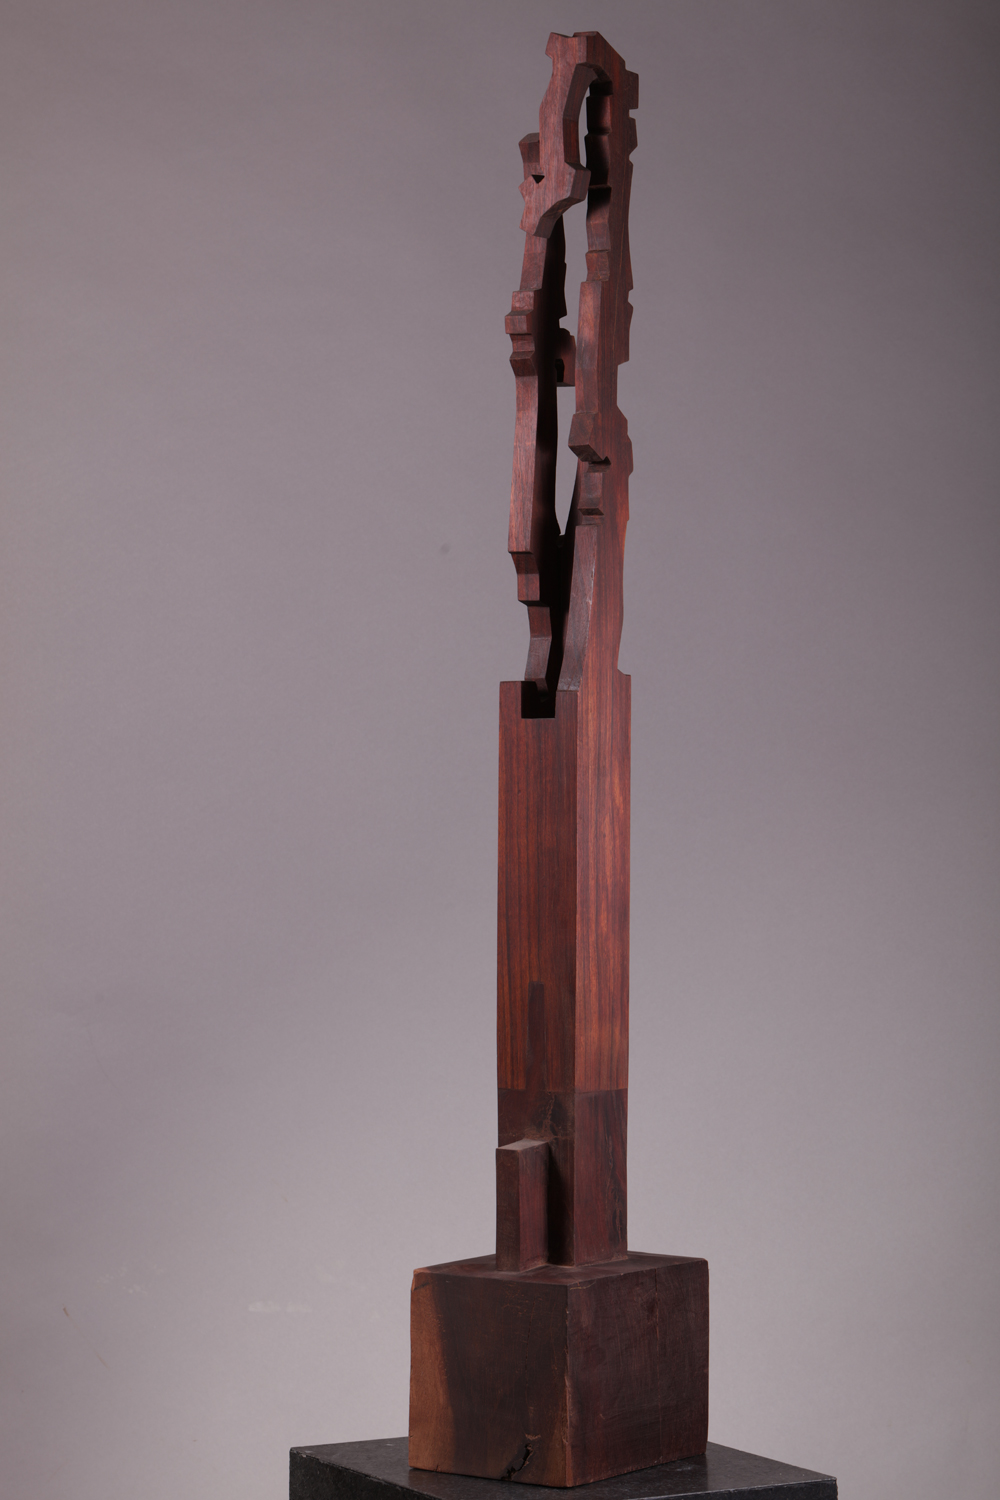 web222-sculpture-Jorge-Yazpik-wood-sculpture-stele-direct-carving-marion-friedmann-gallery.jpg